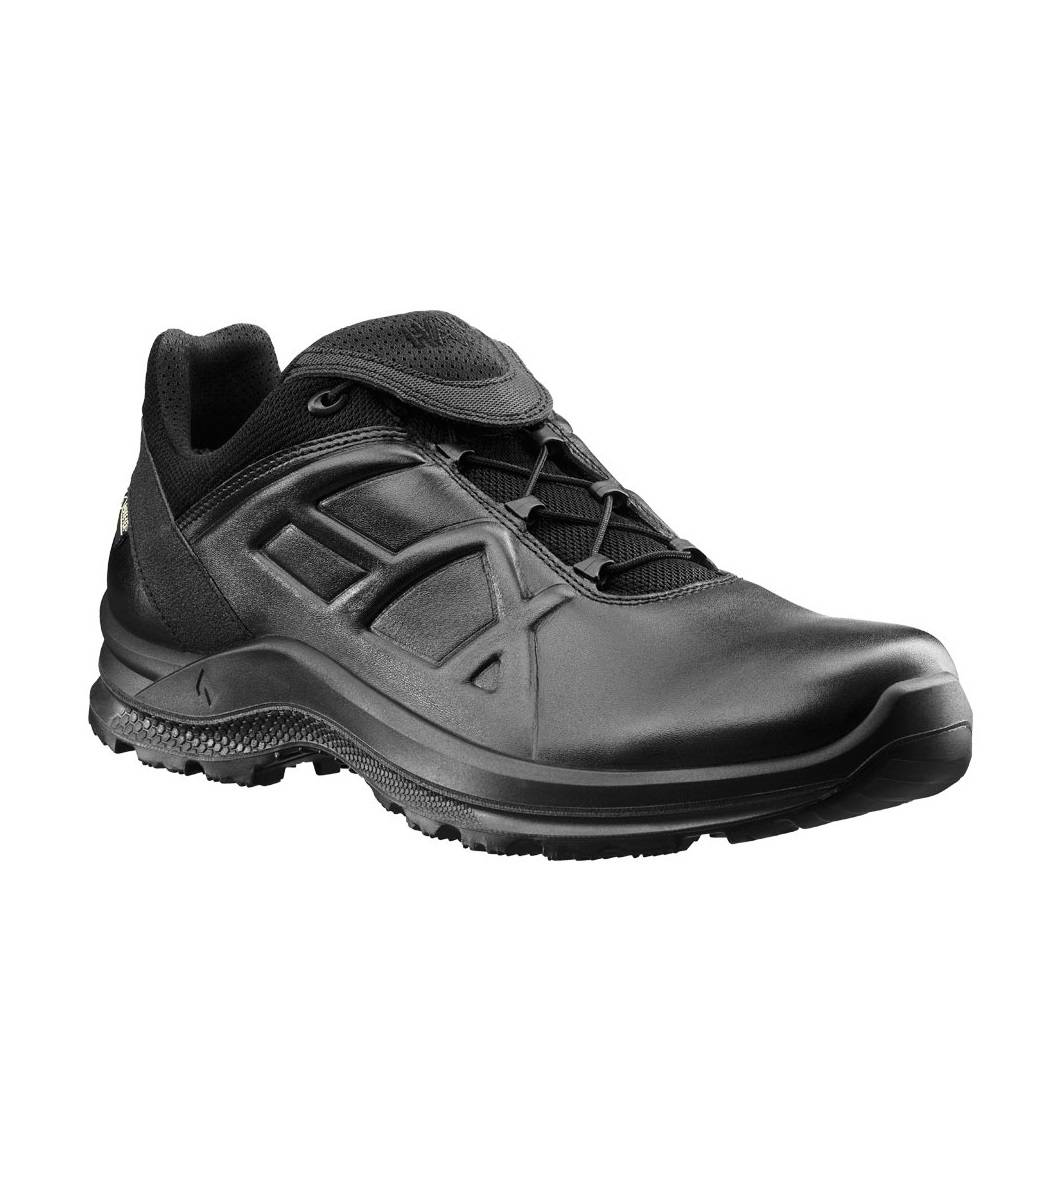 Ботинки Black Eagle Tactical 2.0 Low GTX Black 2сорт HAIX